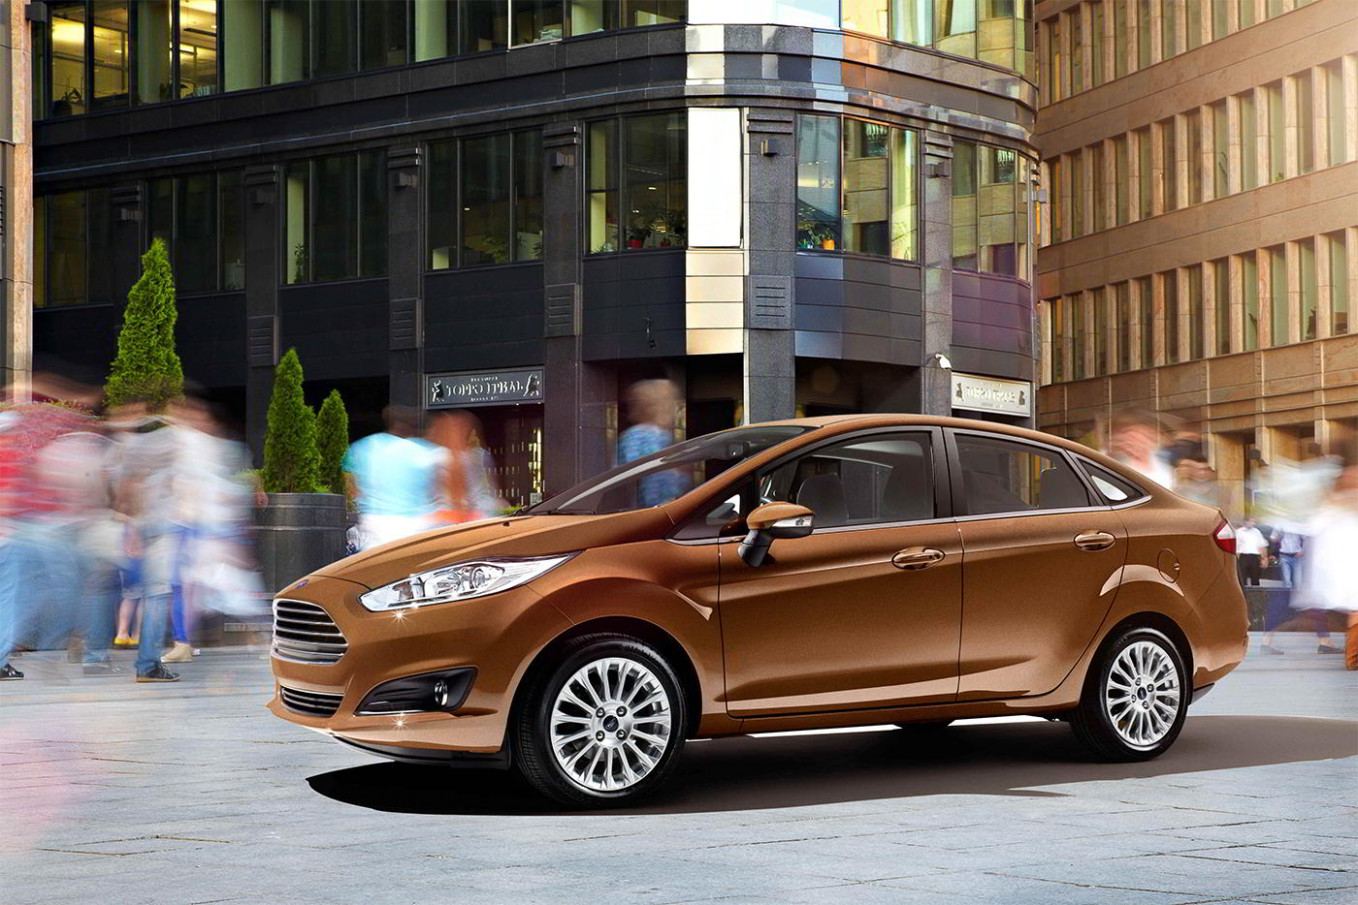 New Concept 2022 Ford Fiesta